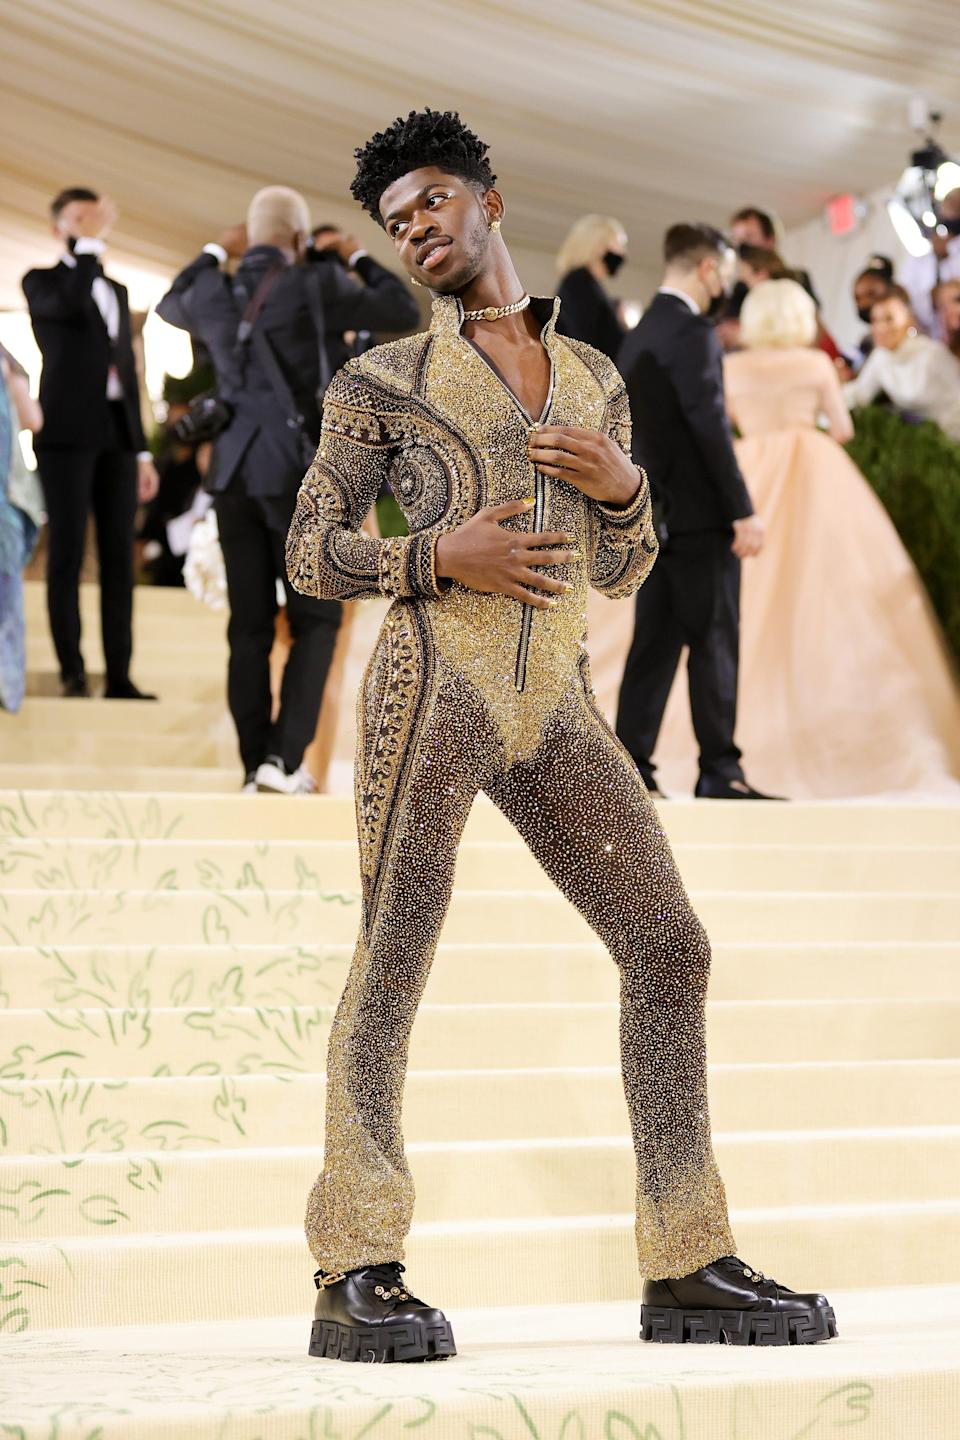 Lil Nas X's star scintillates brighter and brighter with each passing day, whether it's pulling off several different sexy, shocking looks at the Met Gala (like the one pictured).